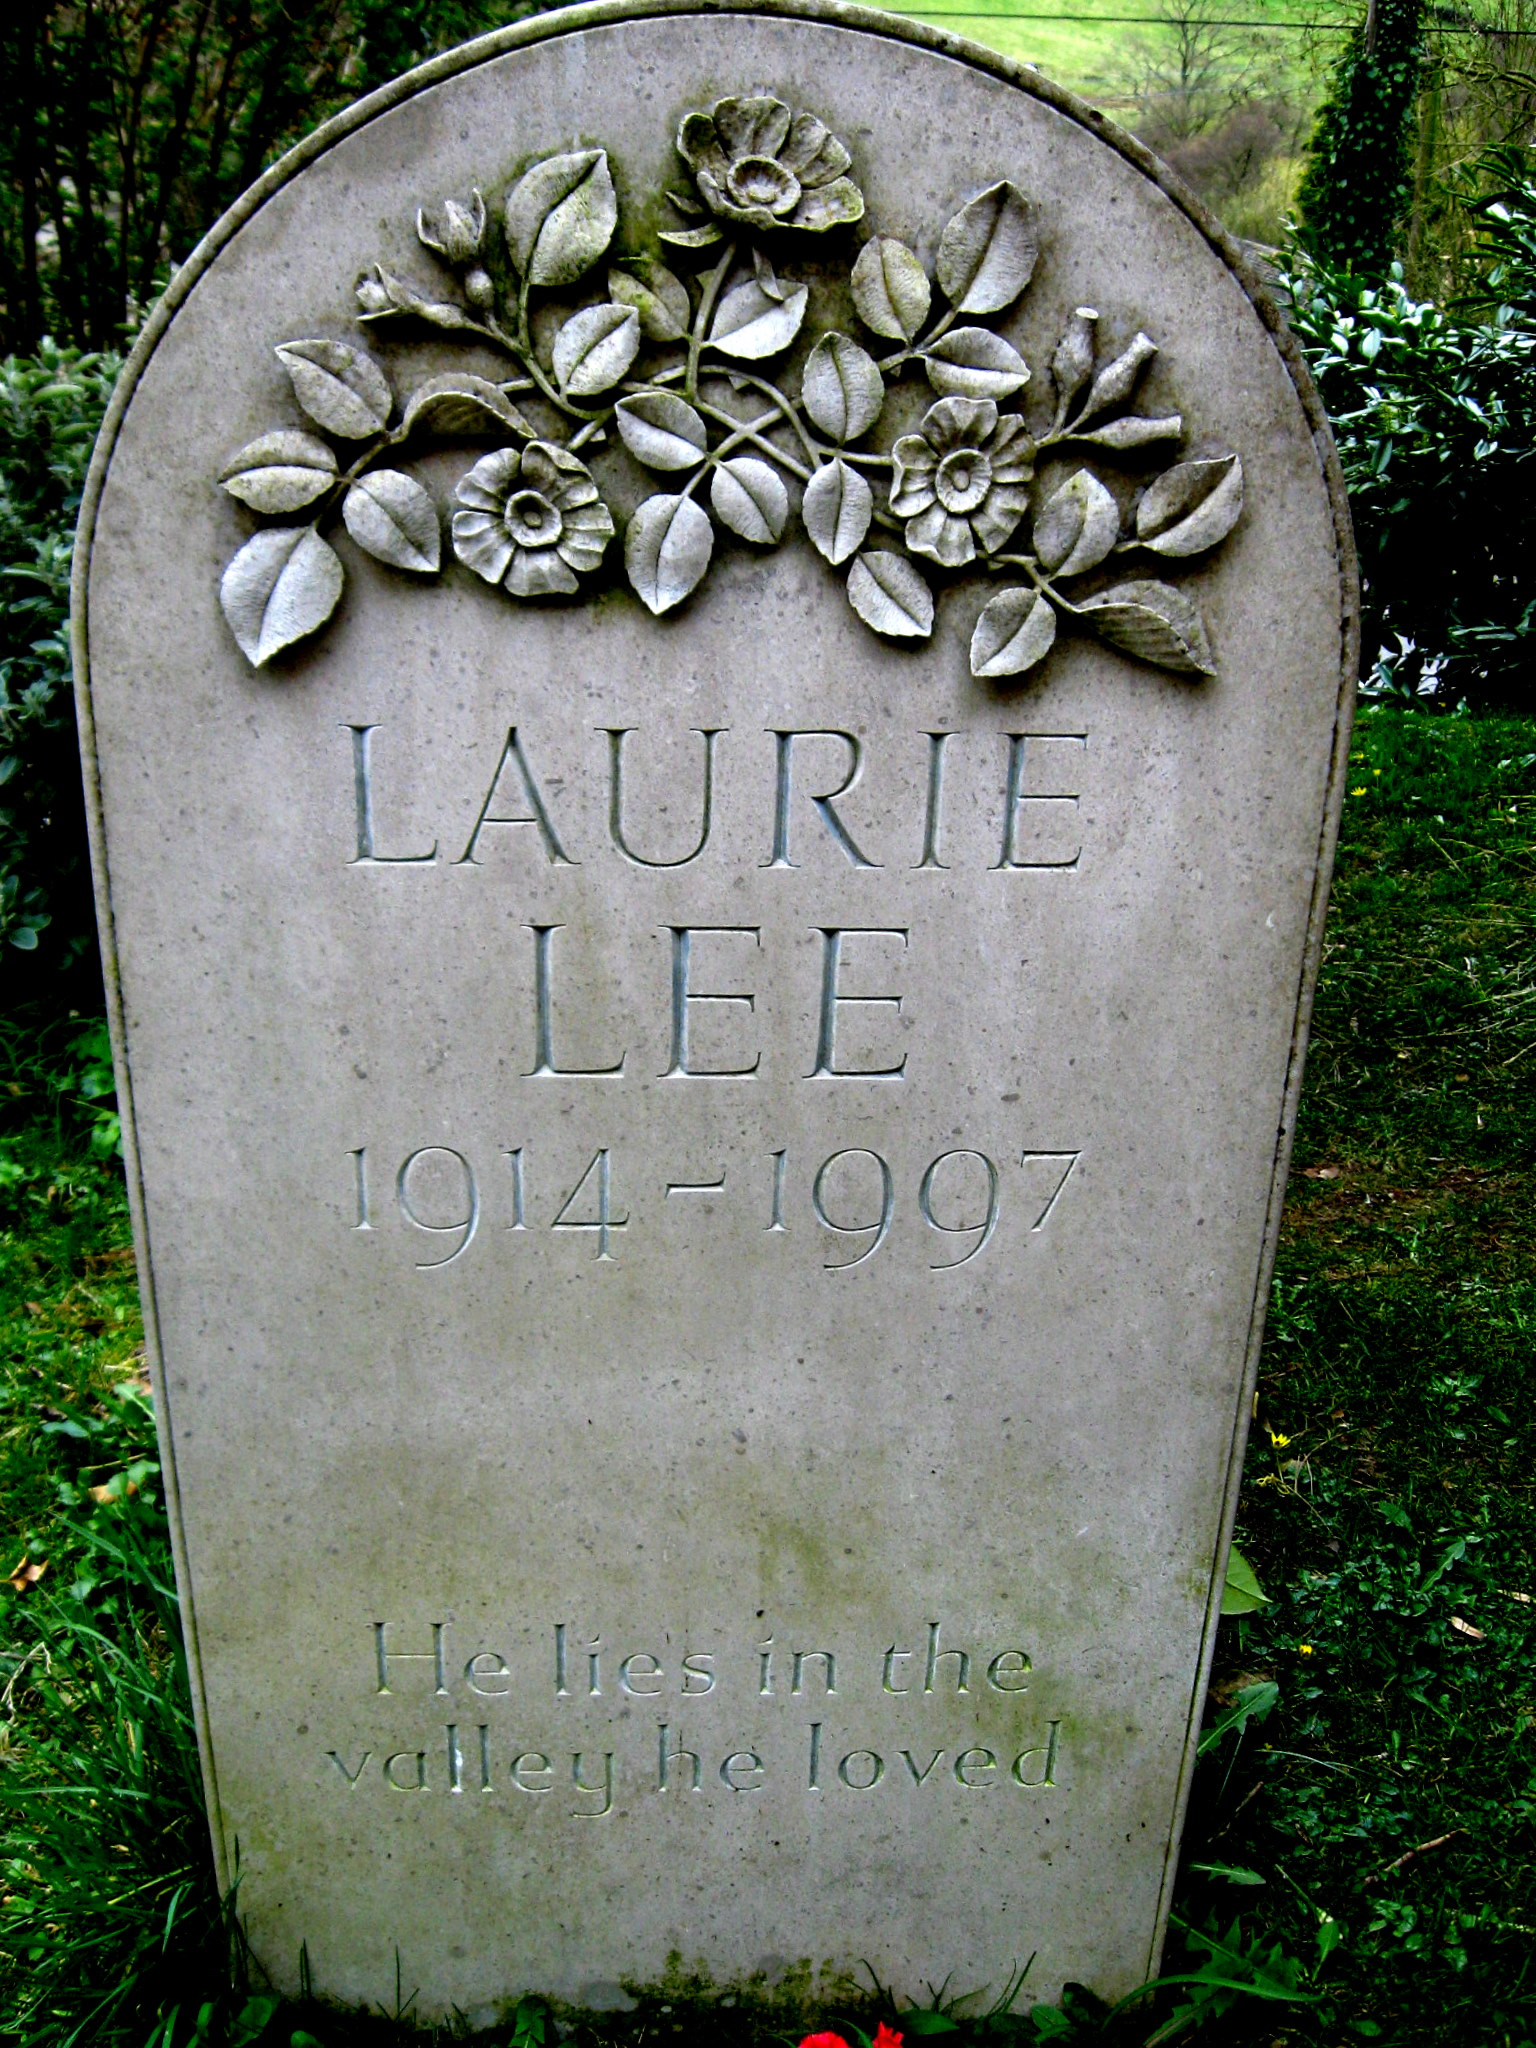 https://upload.wikimedia.org/wikipedia/commons/3/36/LaurieLeeHeadstone.jpg